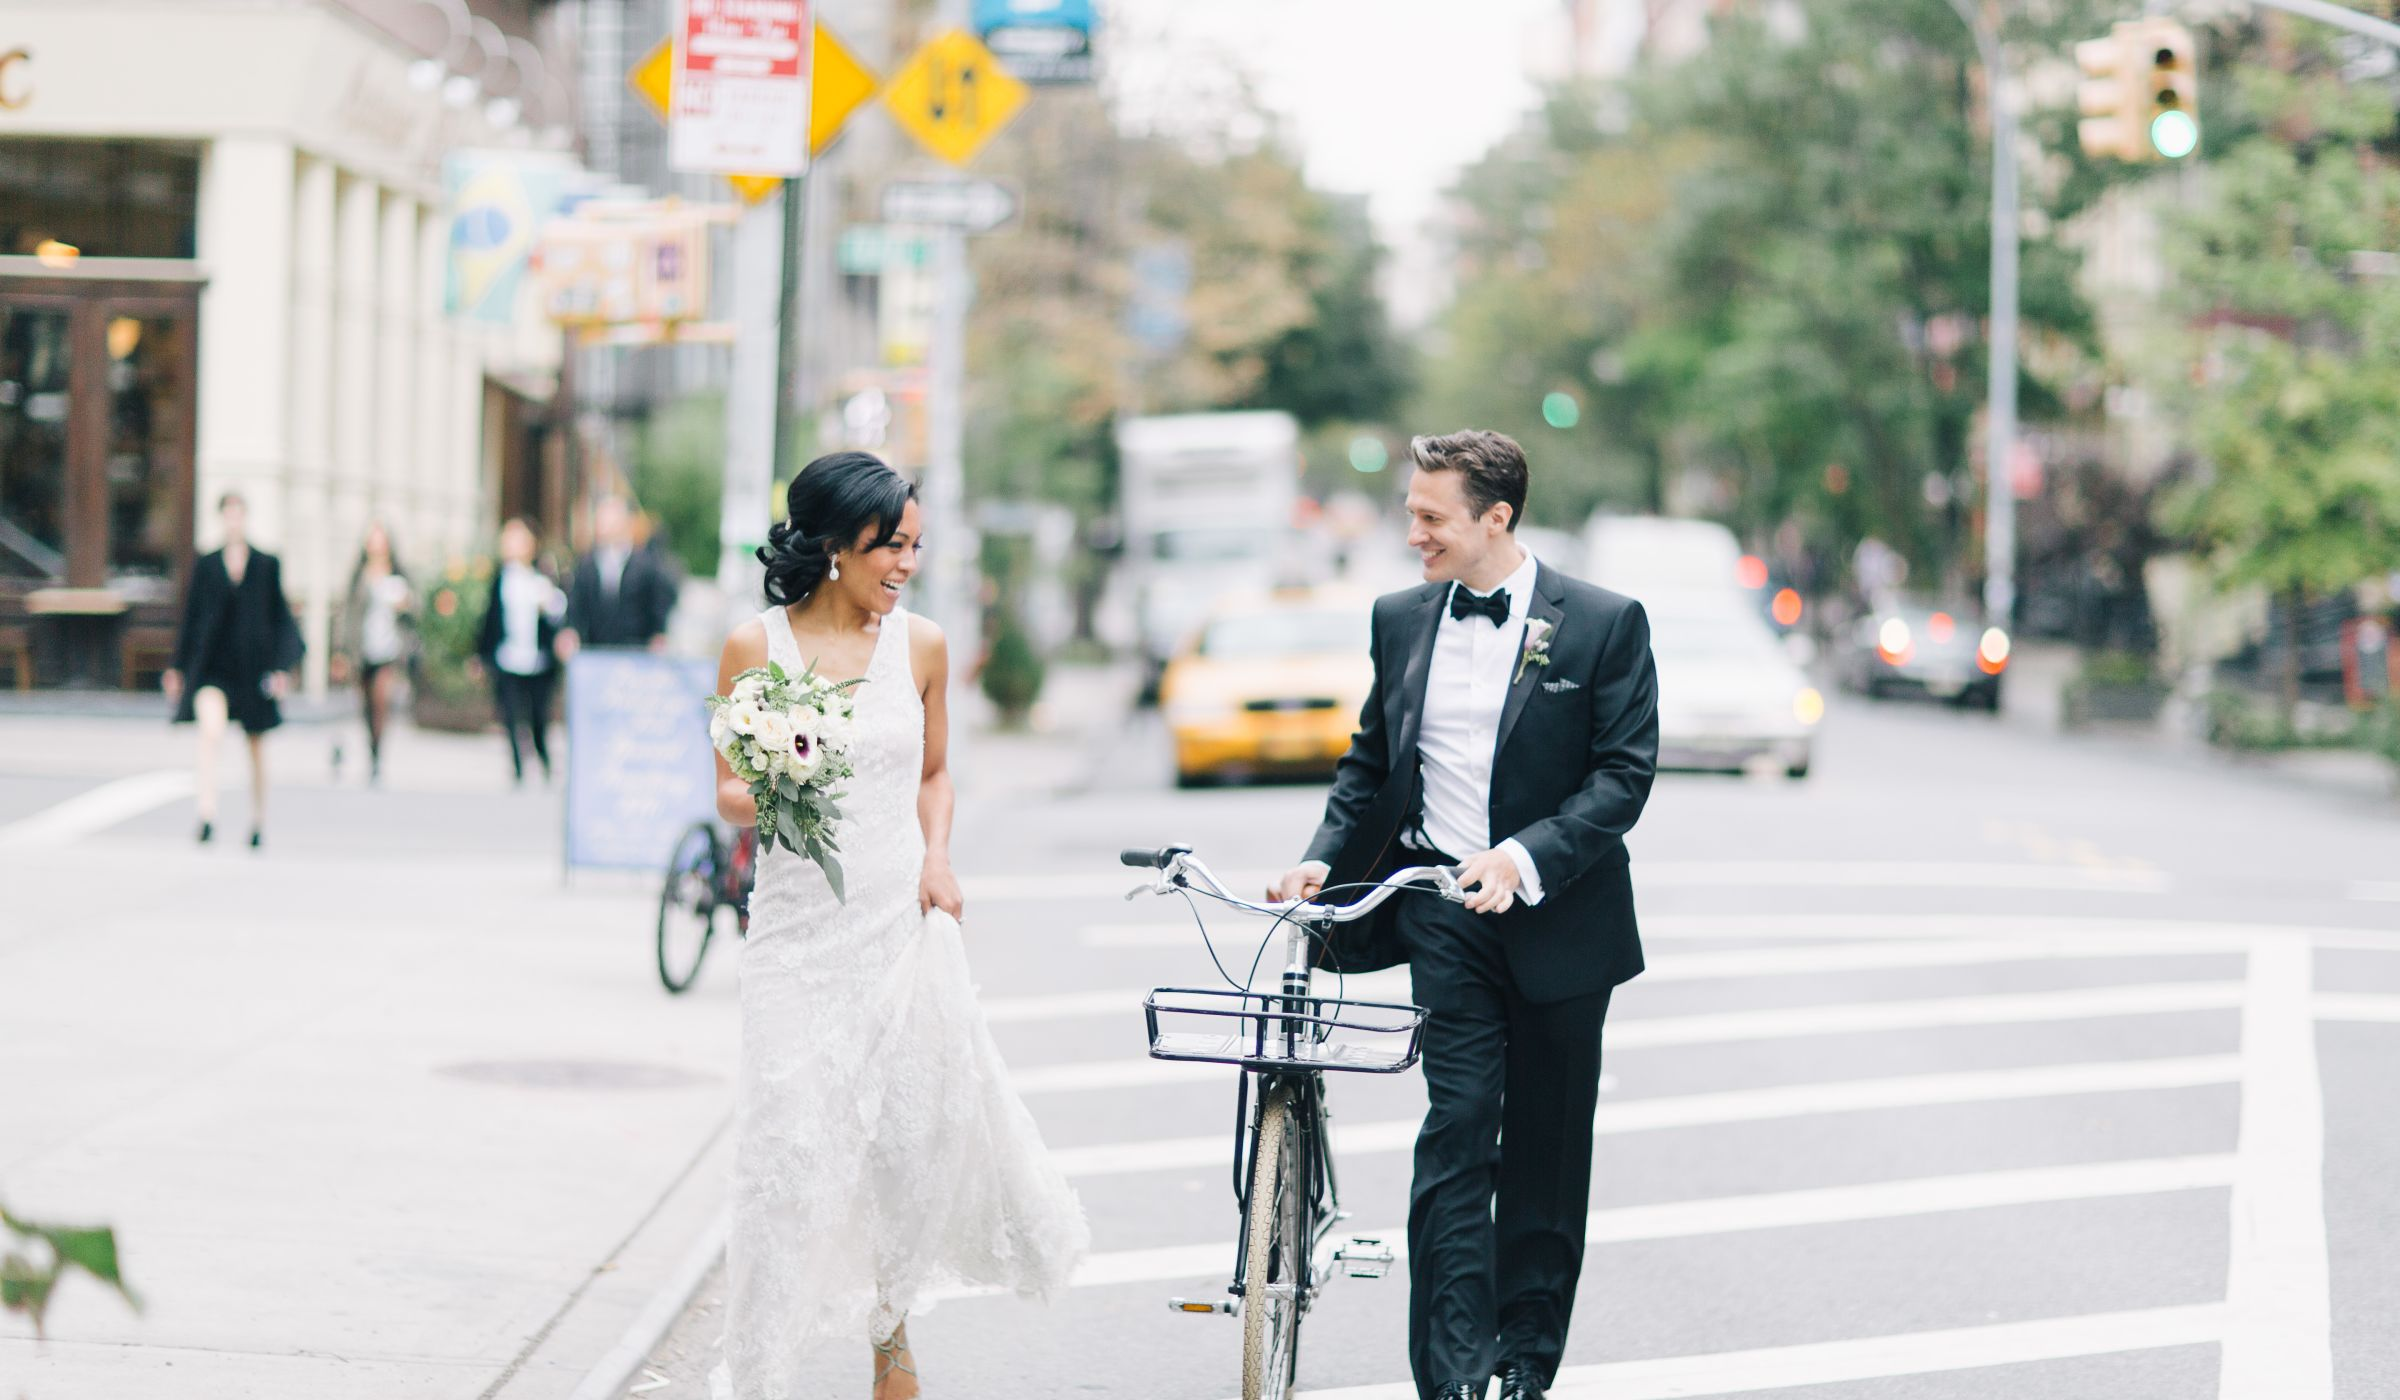 Exactly How Much To Tip Wedding Vendors: A Complete List